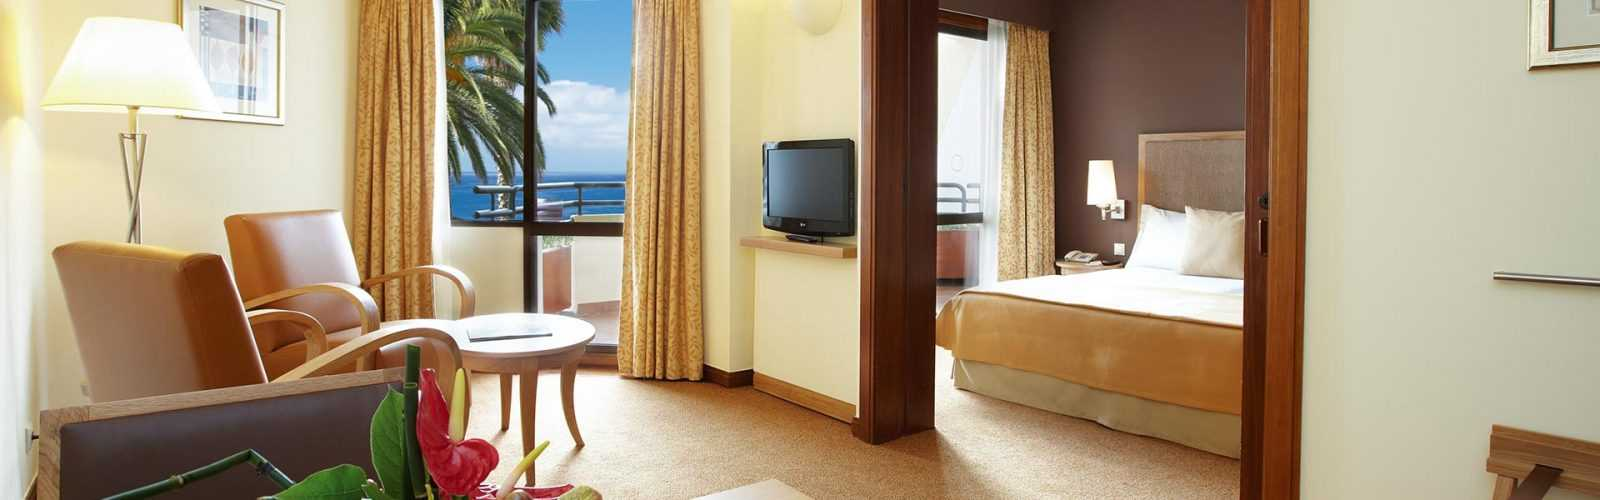 home_hotel_room_2